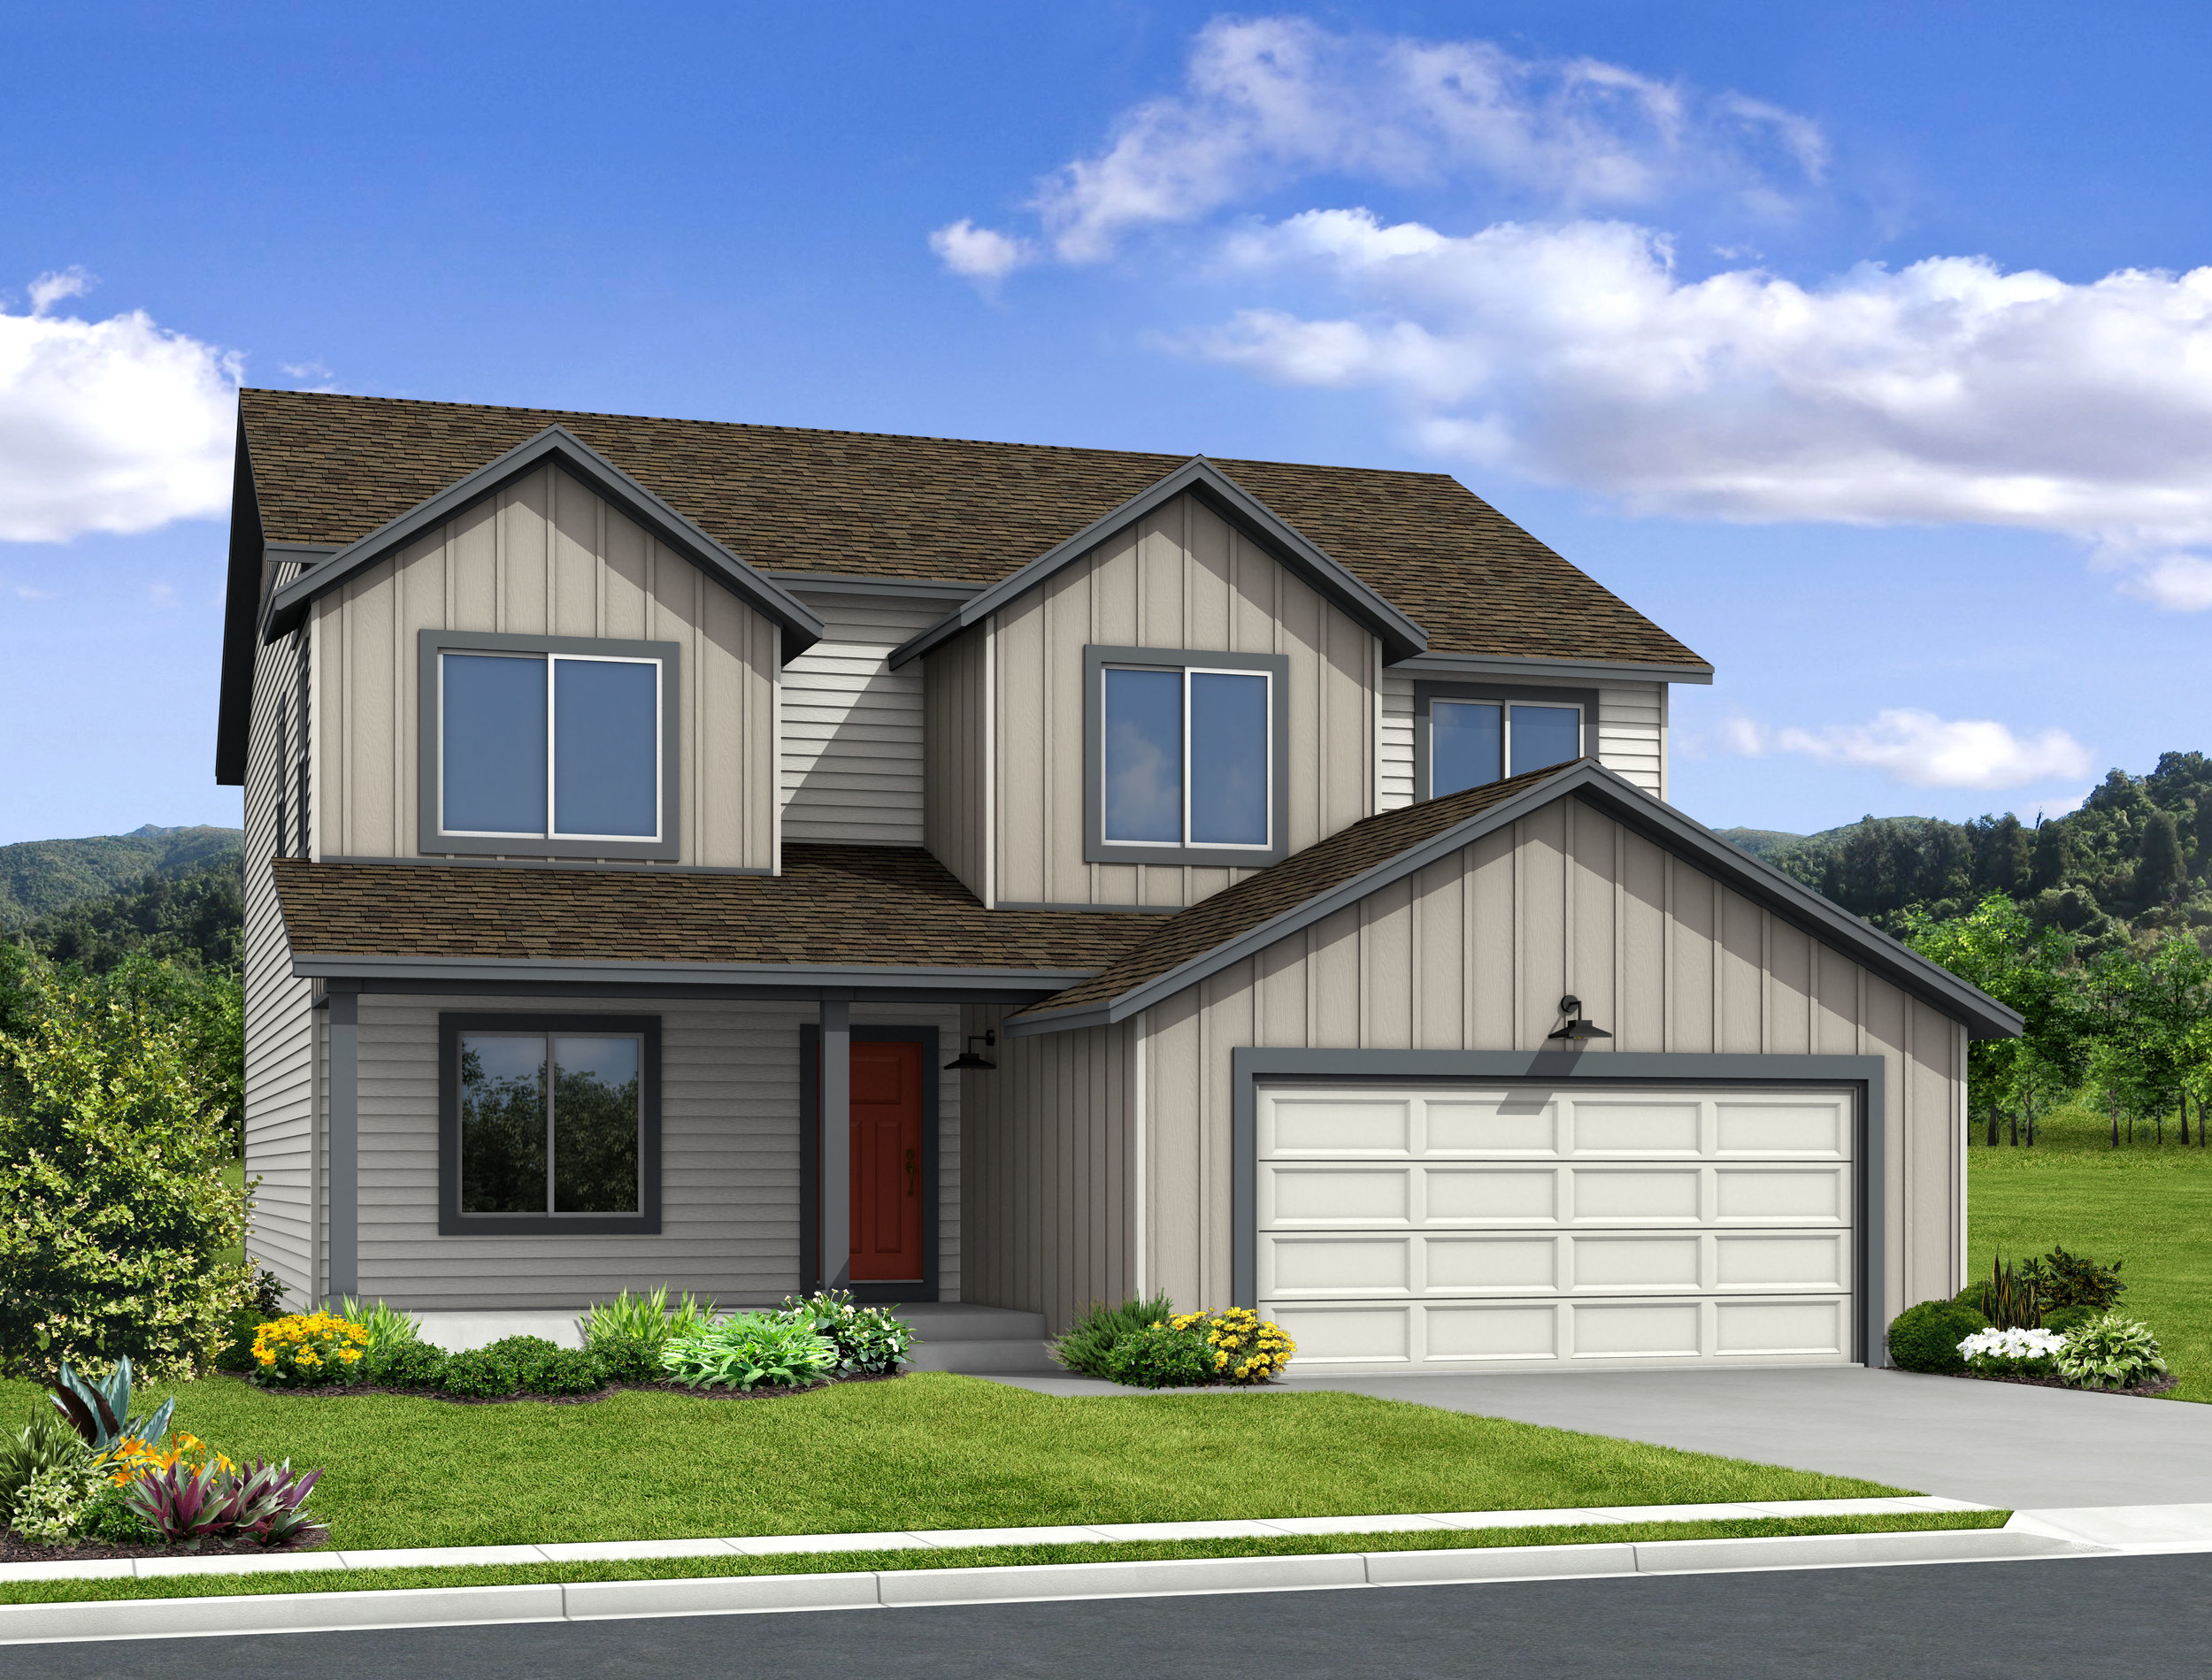 Keller Homes-Cumbre Vista-Farmhouse Series_1707_S.jpg